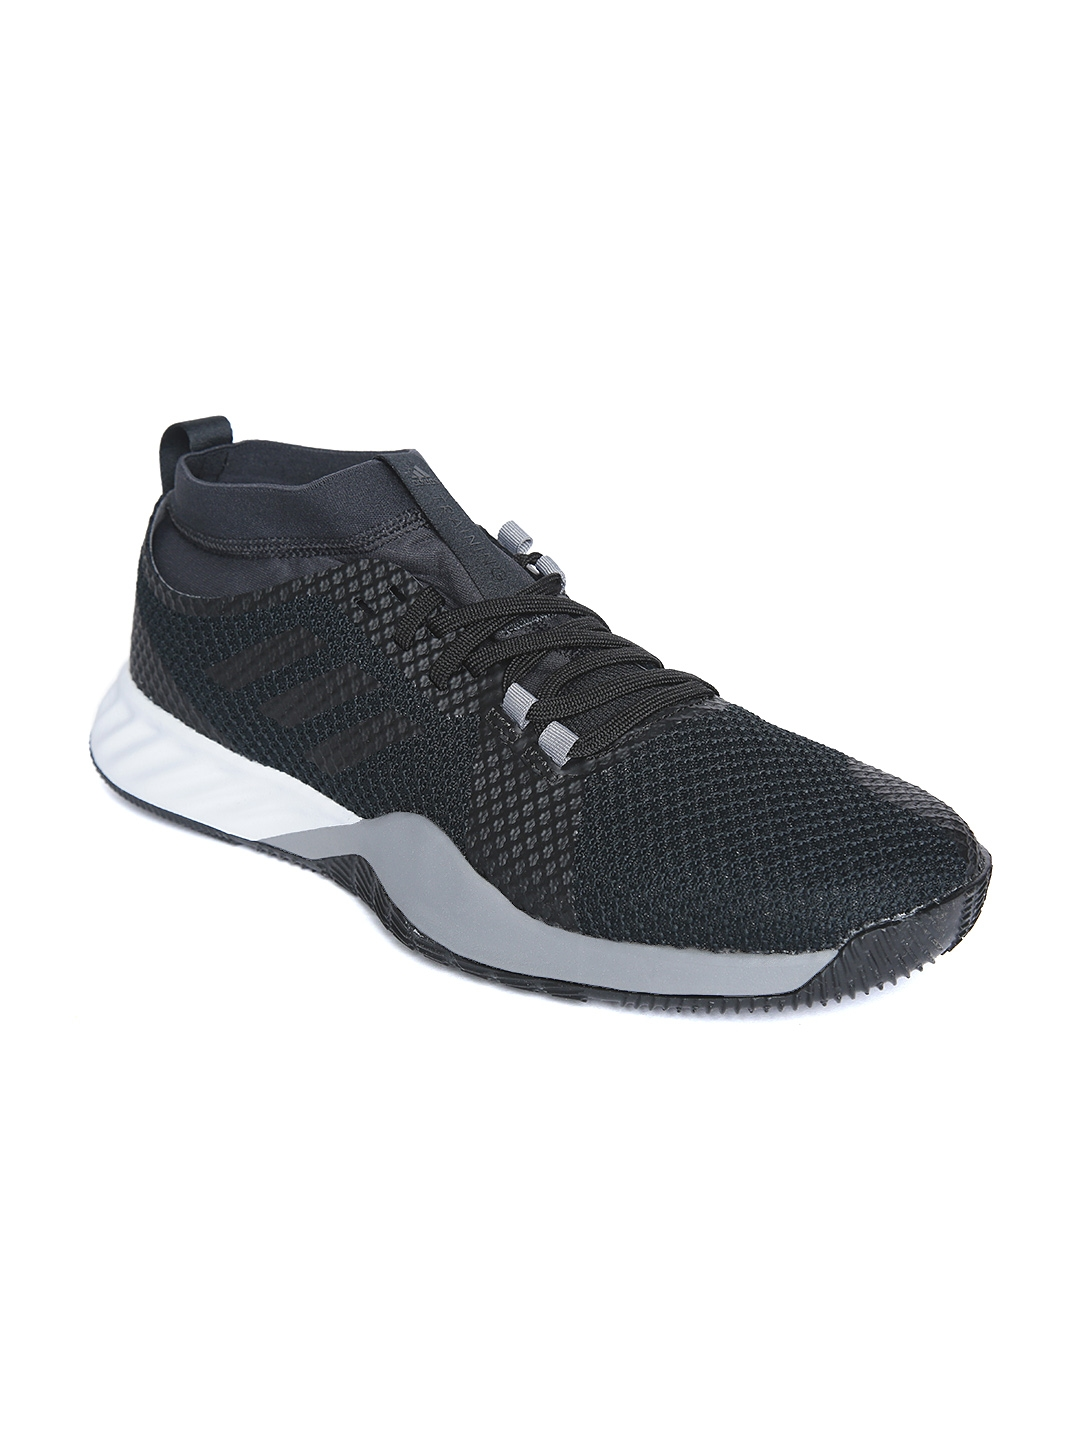 new style 97360 ddc43 ADIDAS Men Black Crazytrain Pro 3.0 Training Shoes